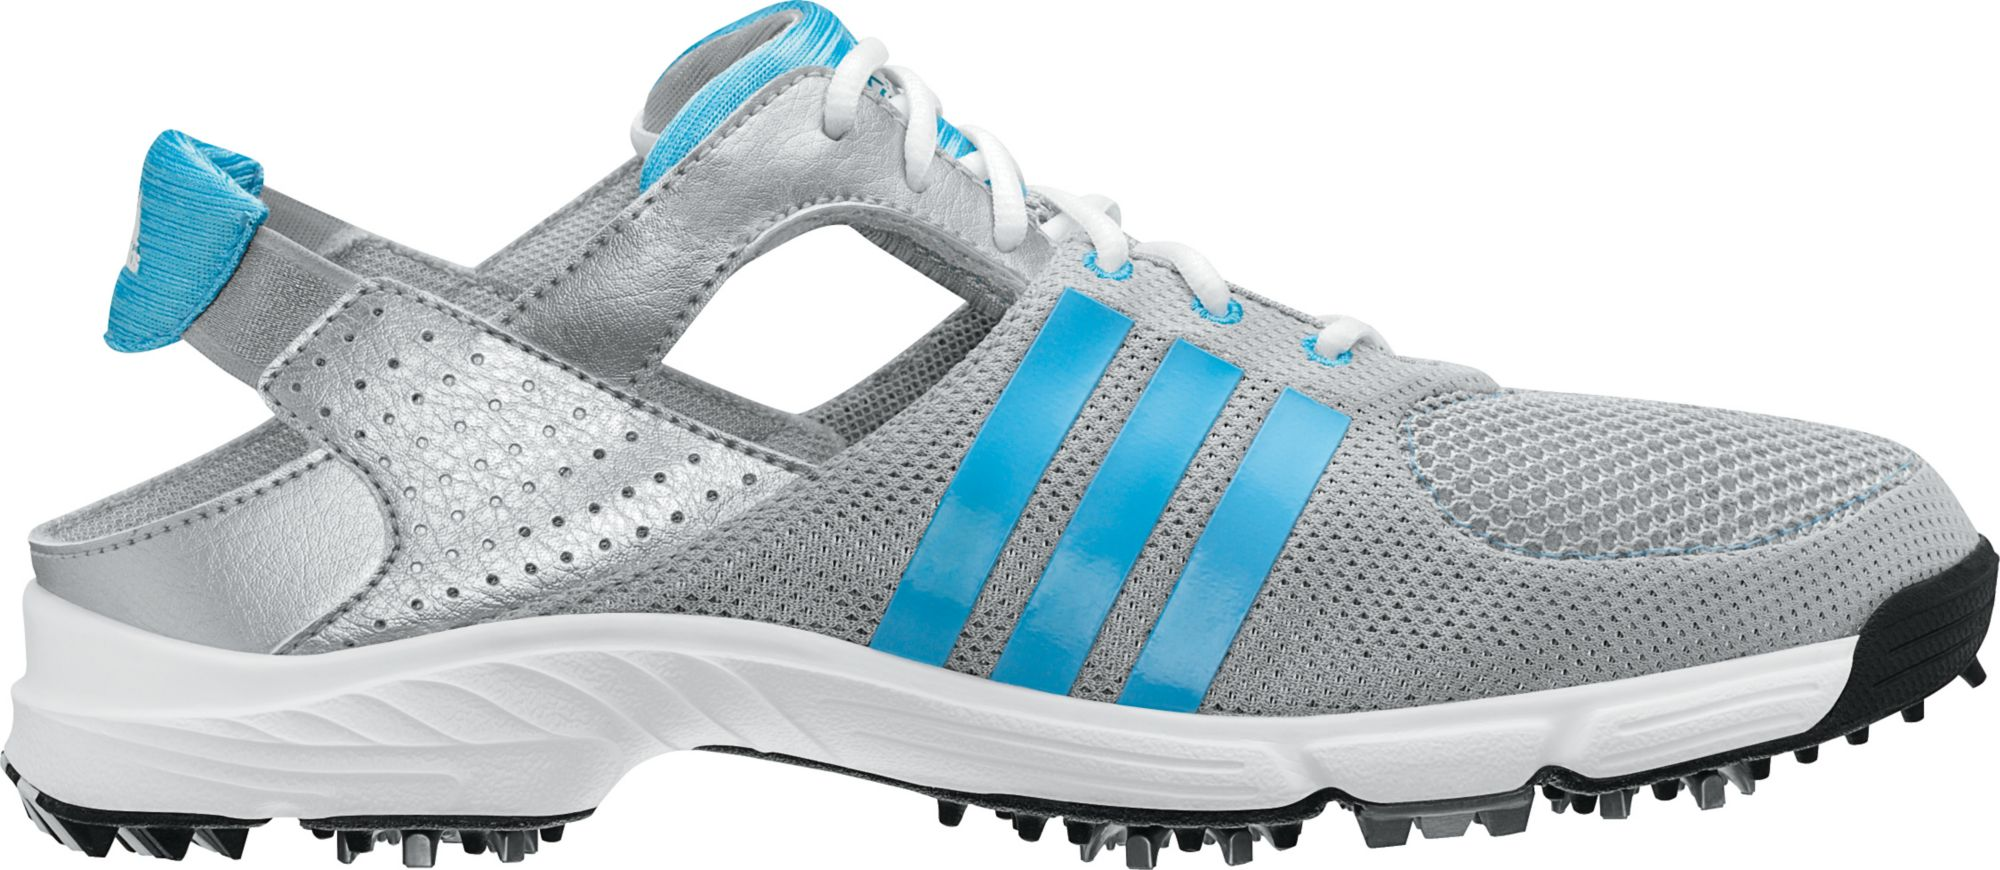 adidas Women's CLIMACOOL Slingback Golf Shoe - Metallic Silver/Cosmic Blue/White